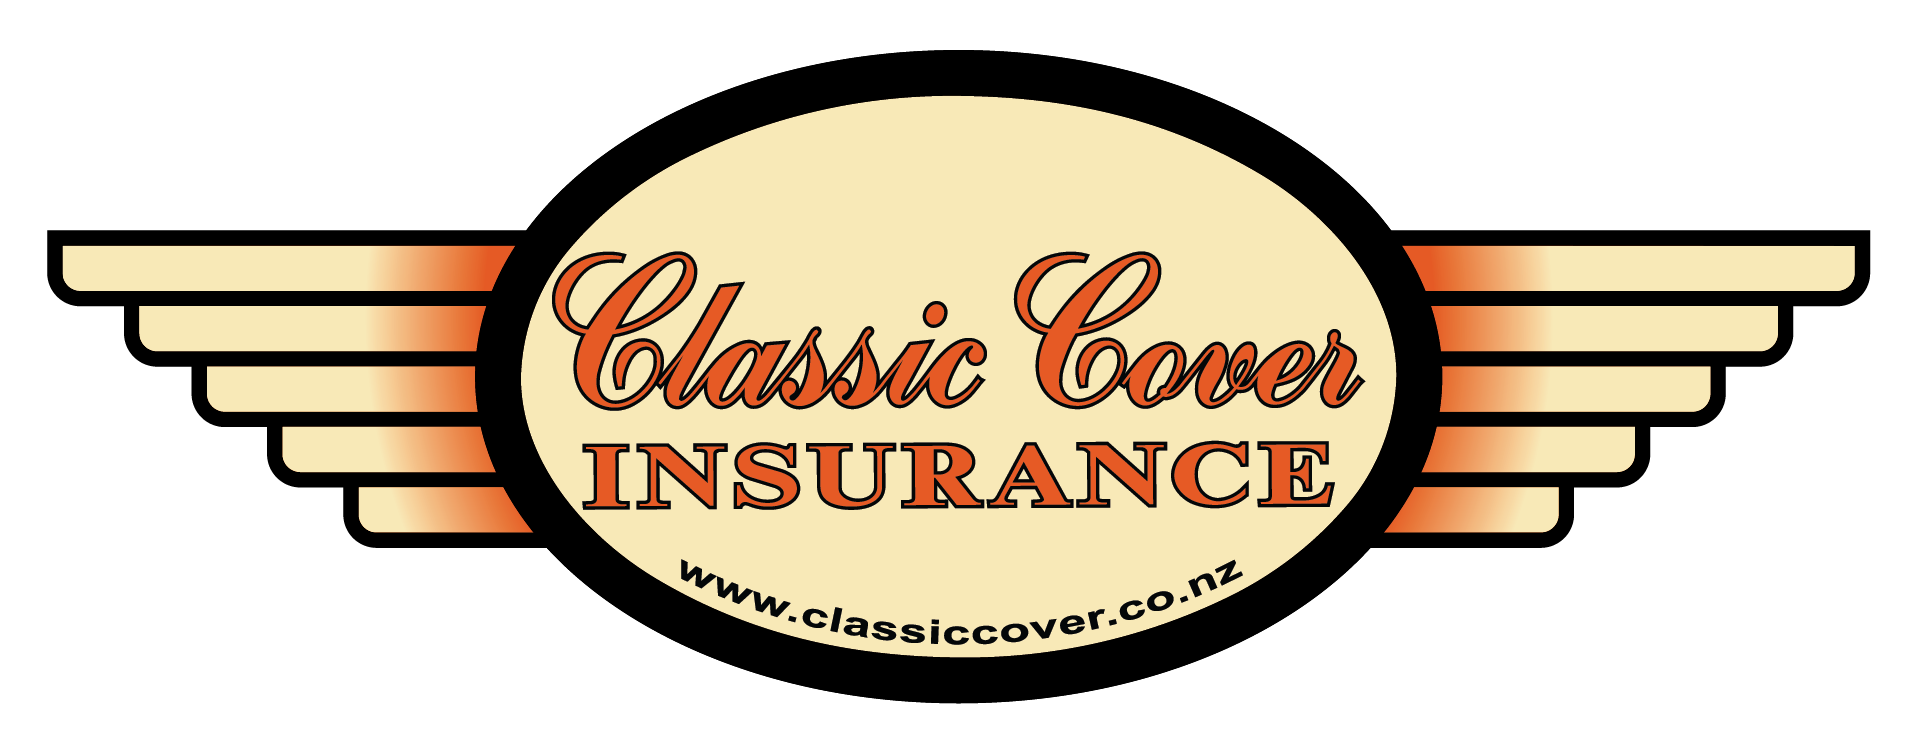 Classic Cover Insurance badge logo